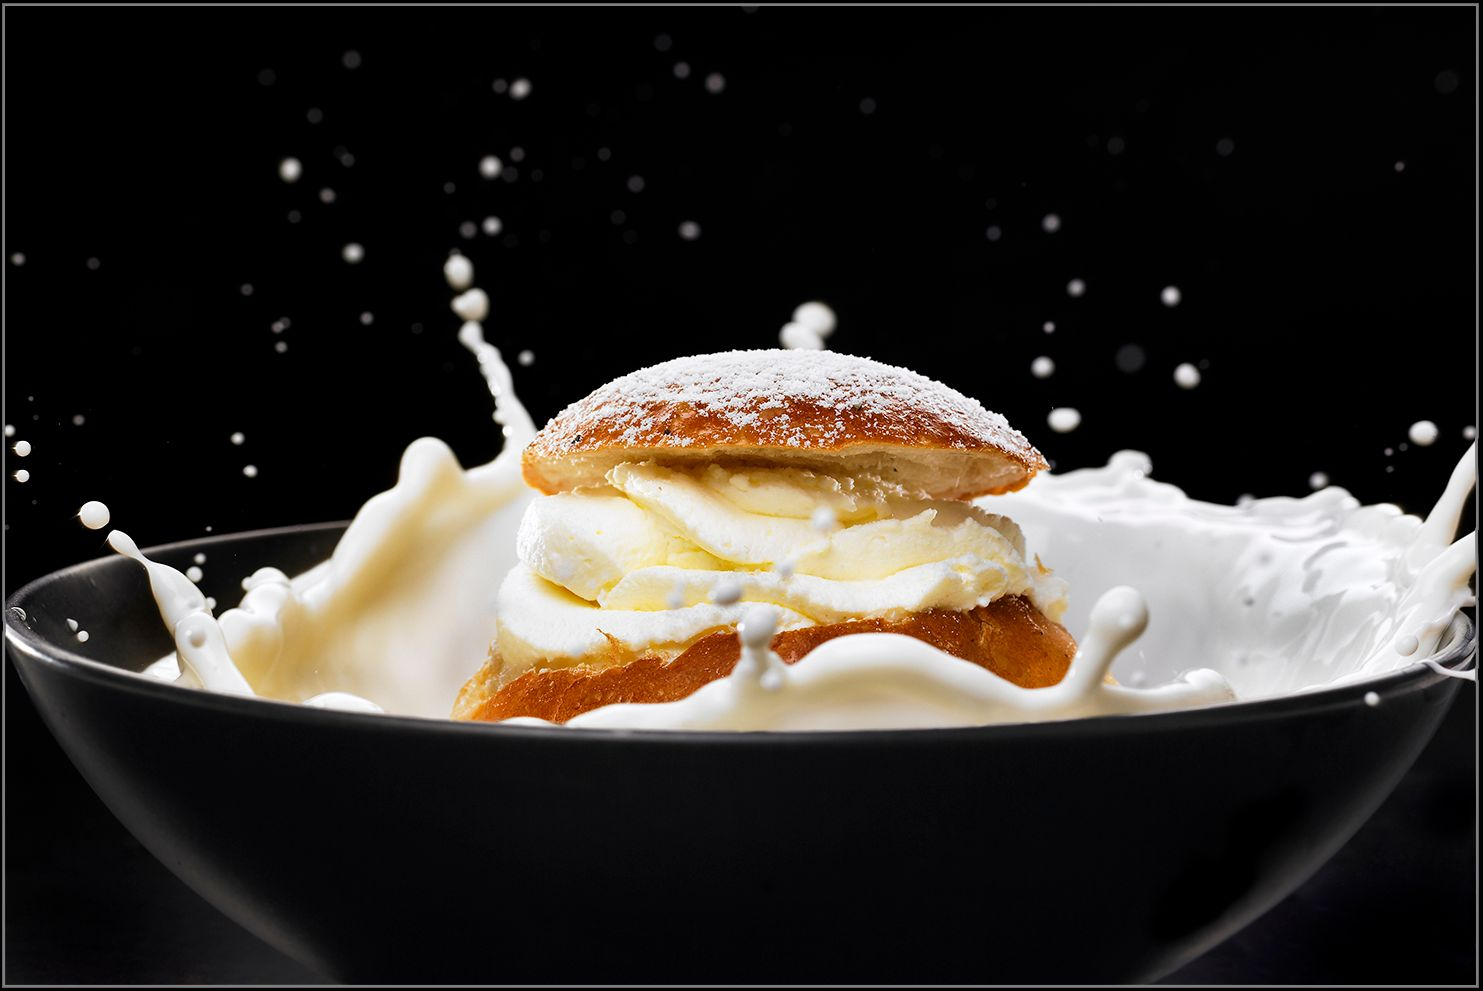 "Food Photography & styling by Fredrik Rege. ""Semla"" or ""Fastlagsbulle"" an old Swedish pastry."